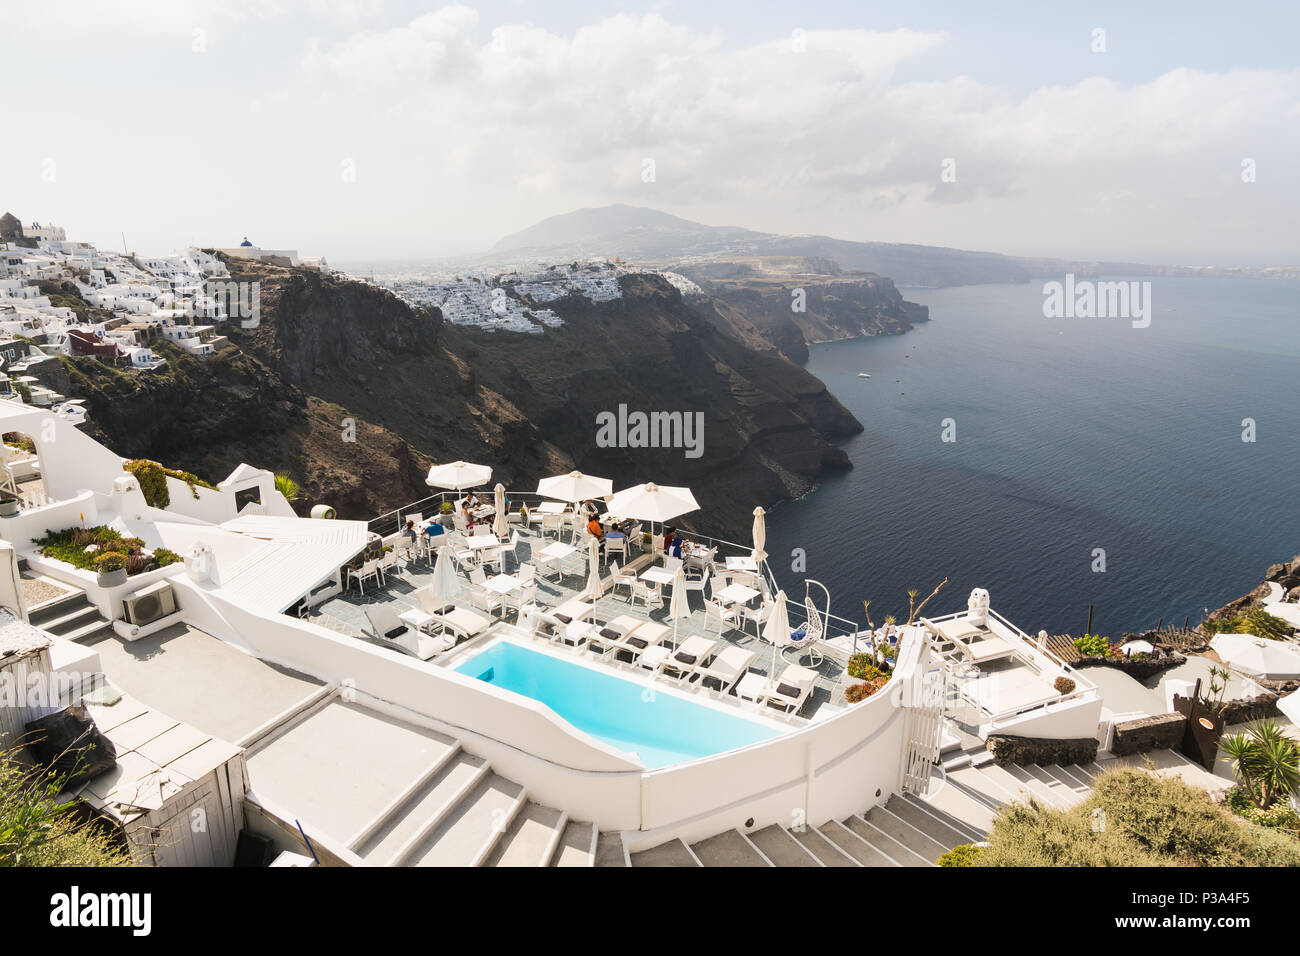 SANTORINI, GREECE - MAY 2018: View over Aegean sea, Firostefani village and volcano caldera with luxury hotel and infinity swimming pool on the foregr Stock Photo